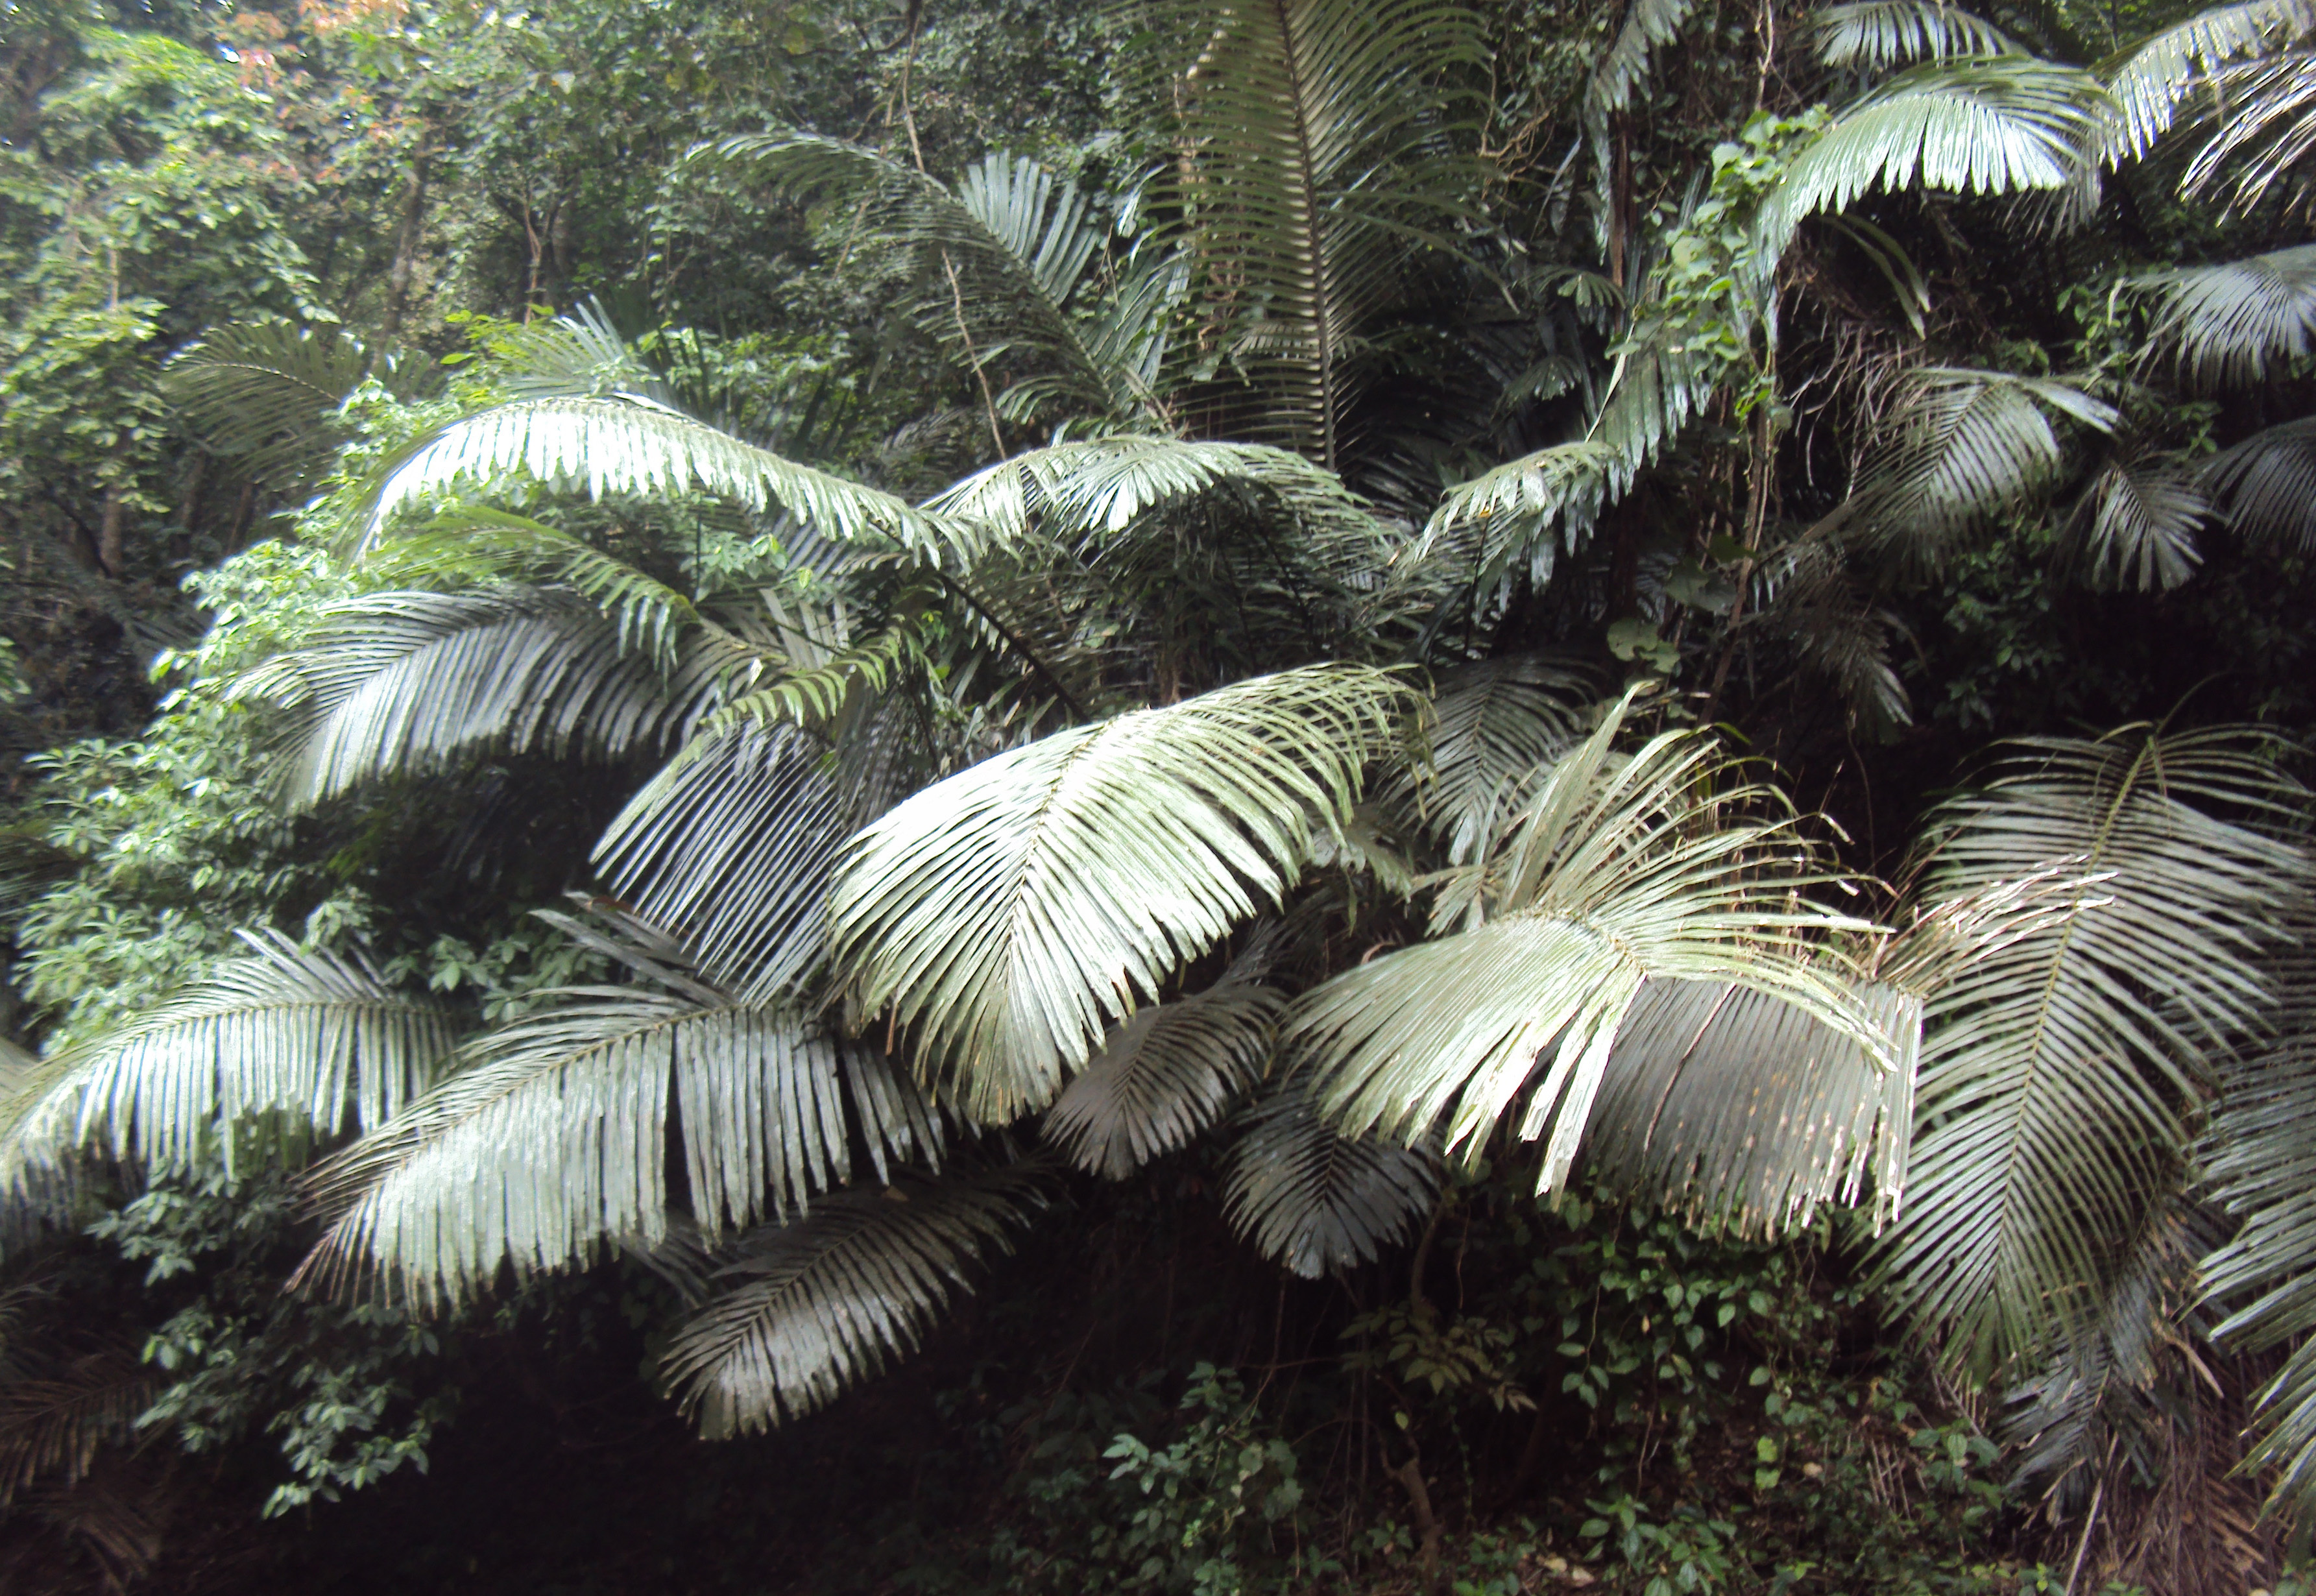 Image of Wight's sago palm